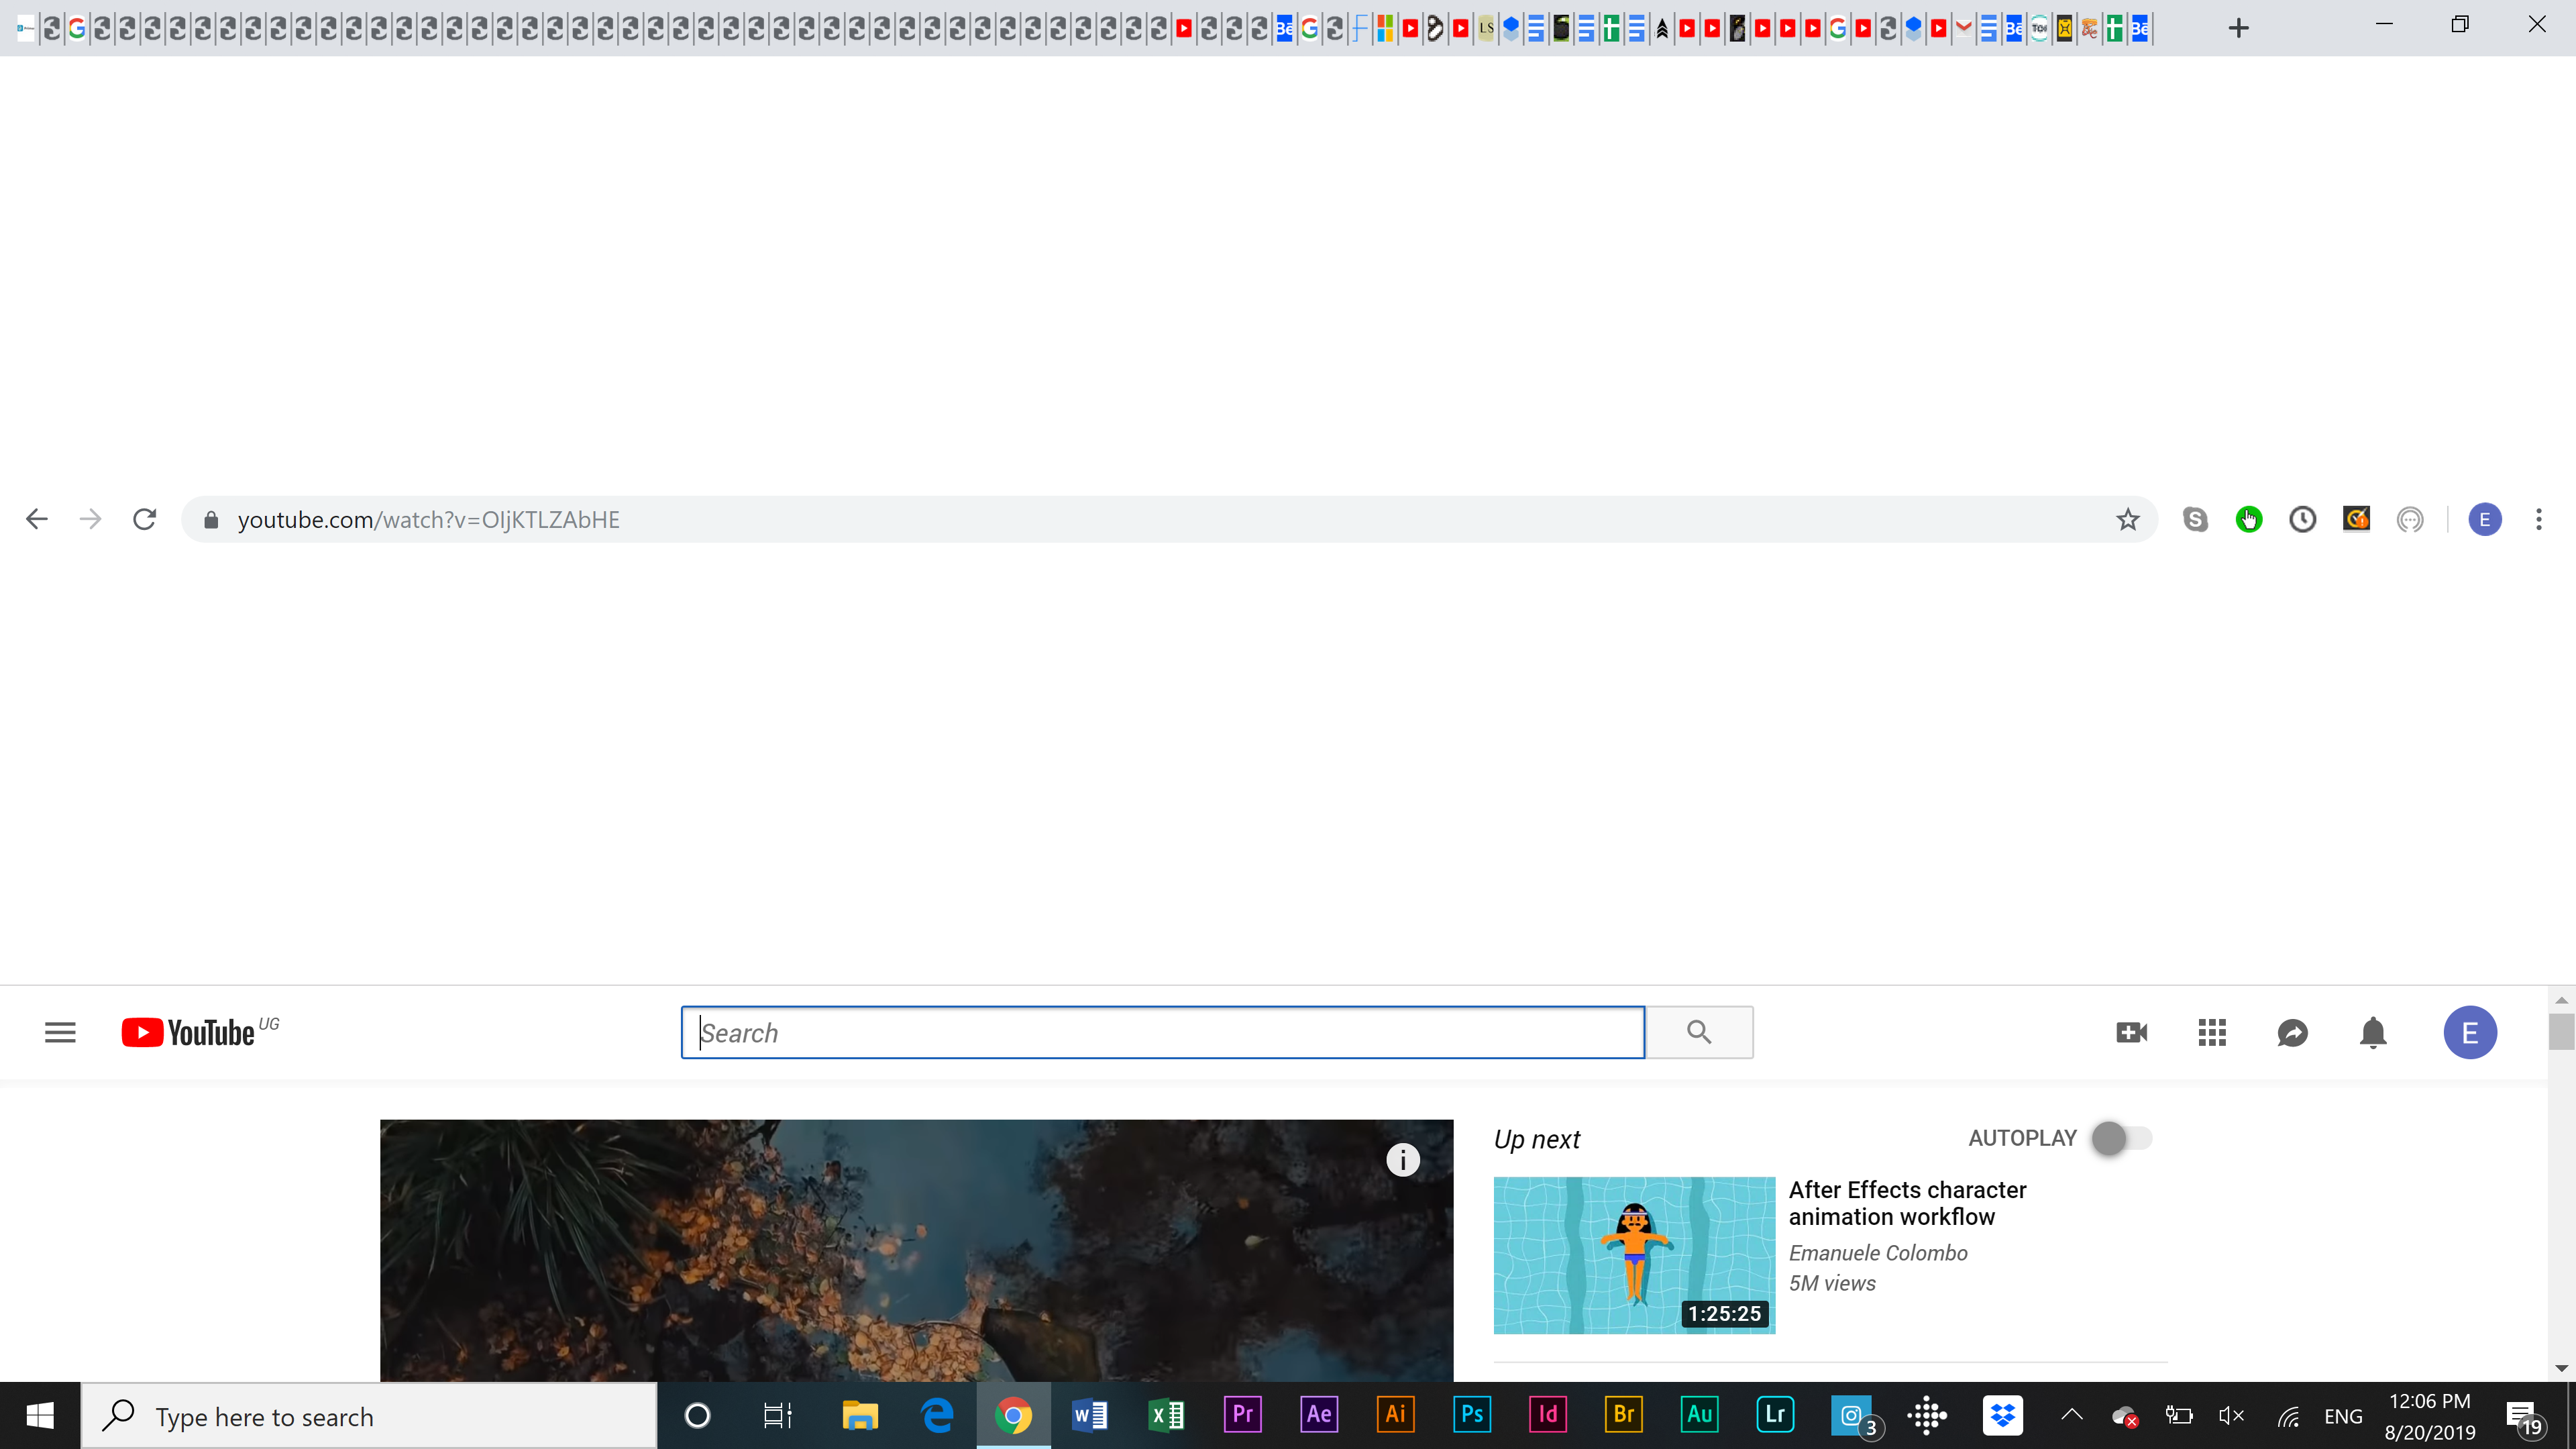 Why is there white space above and below my Chrome search